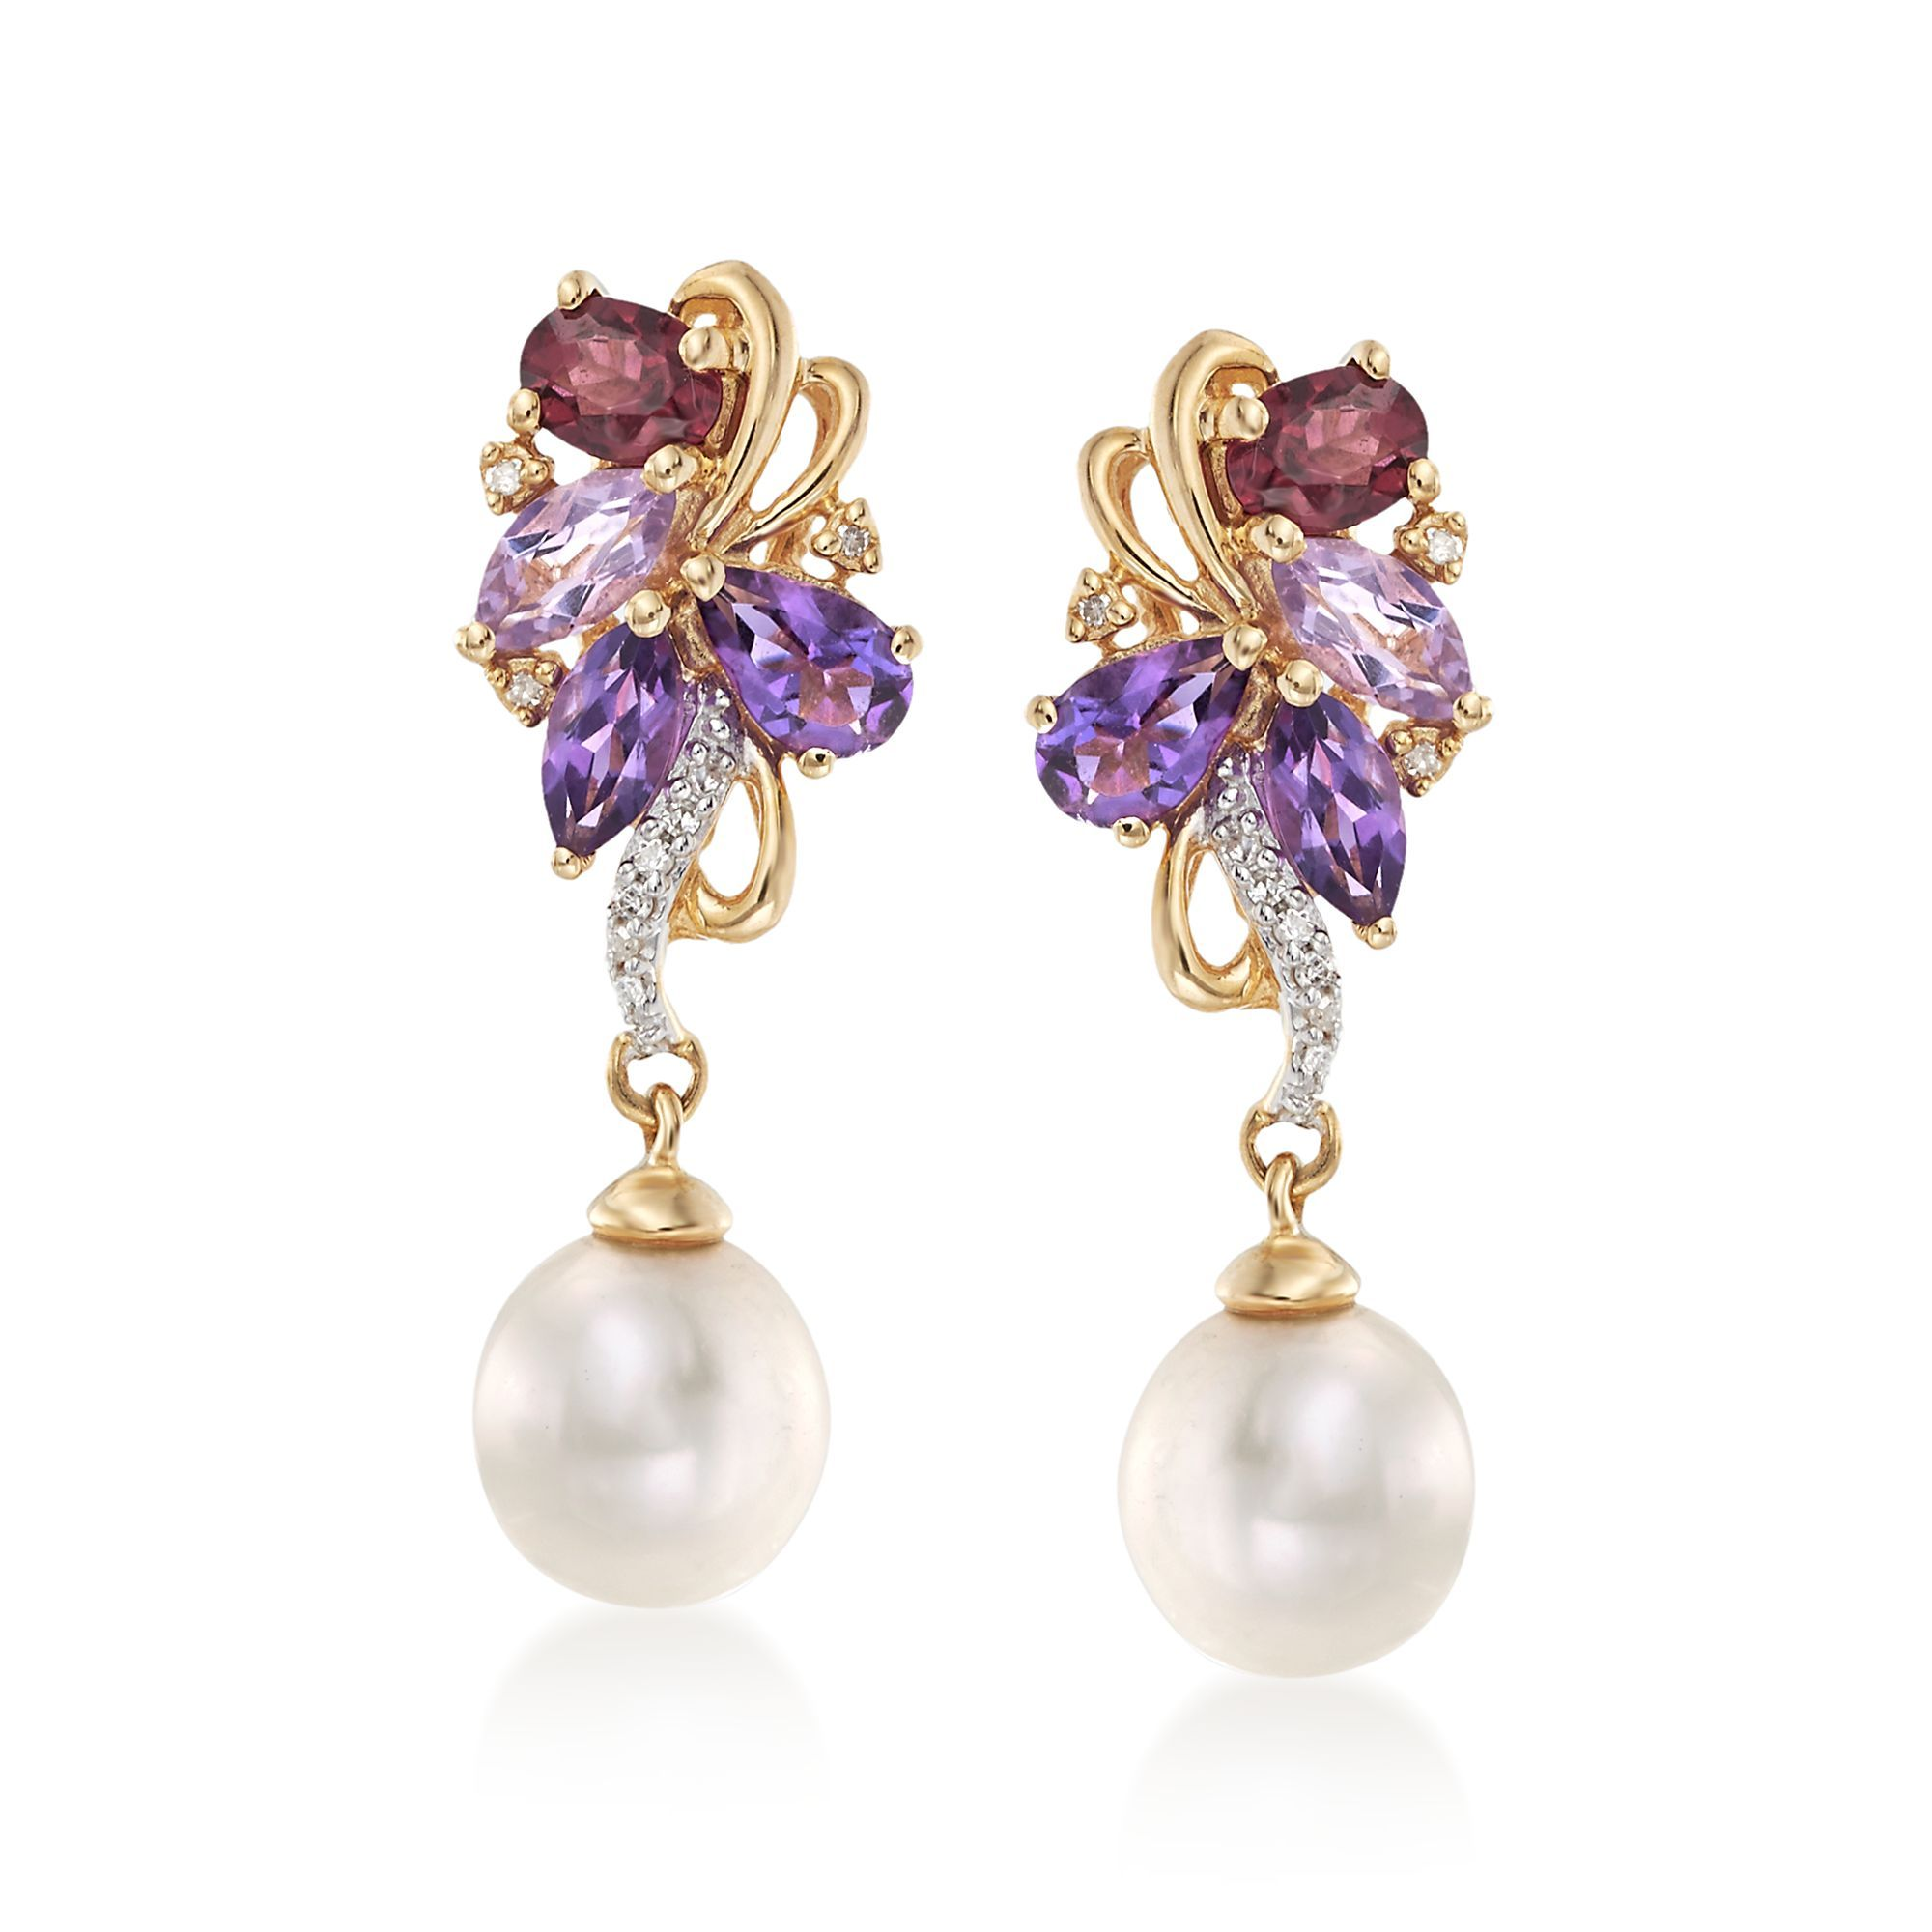 365f4082e771c 7mm Cultured Pearl and 1.20 ct. t.w. Multi-Stone Drop Earrings With ...